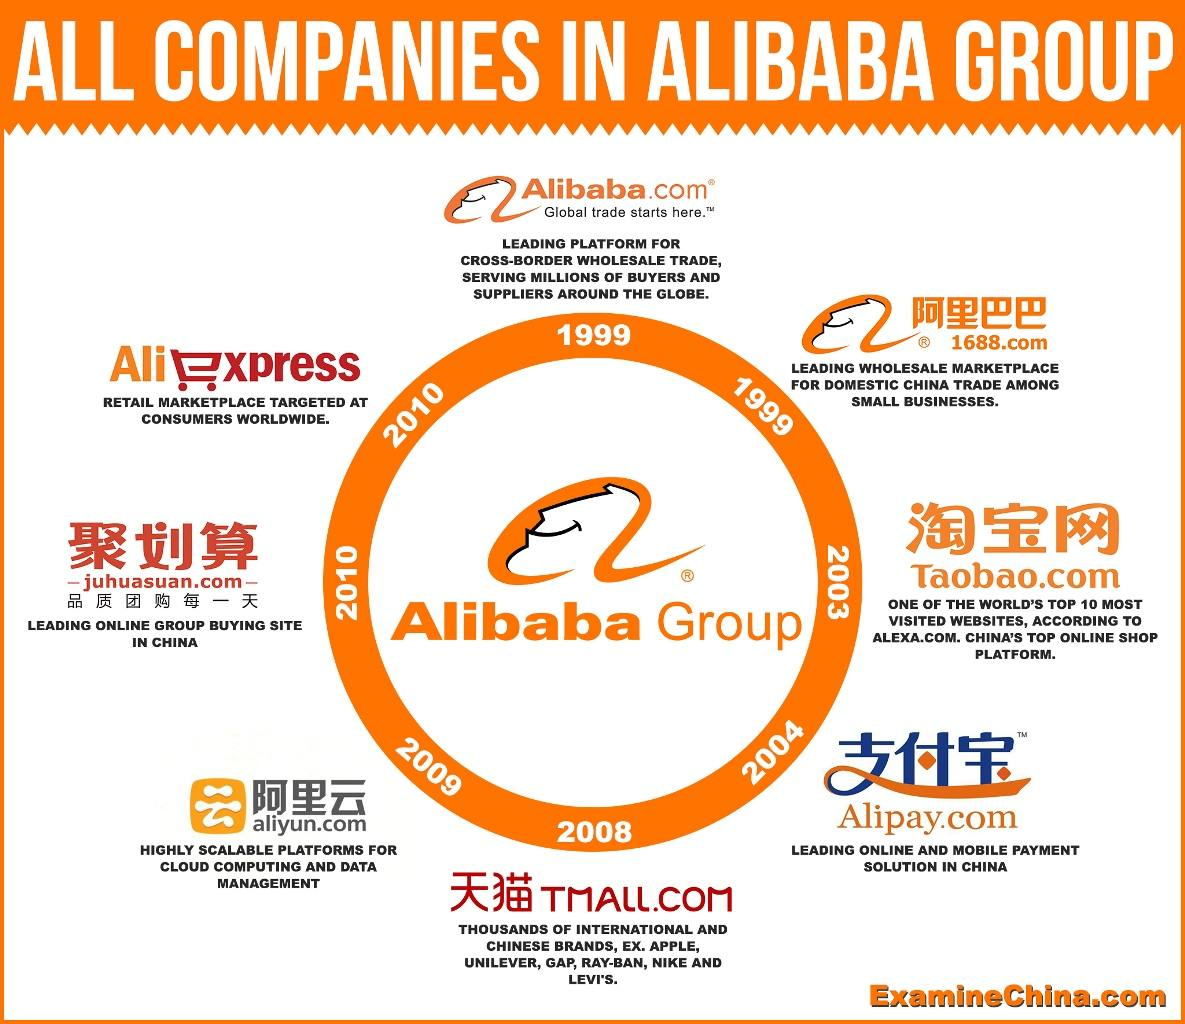 all-companies-in-alibaba-group